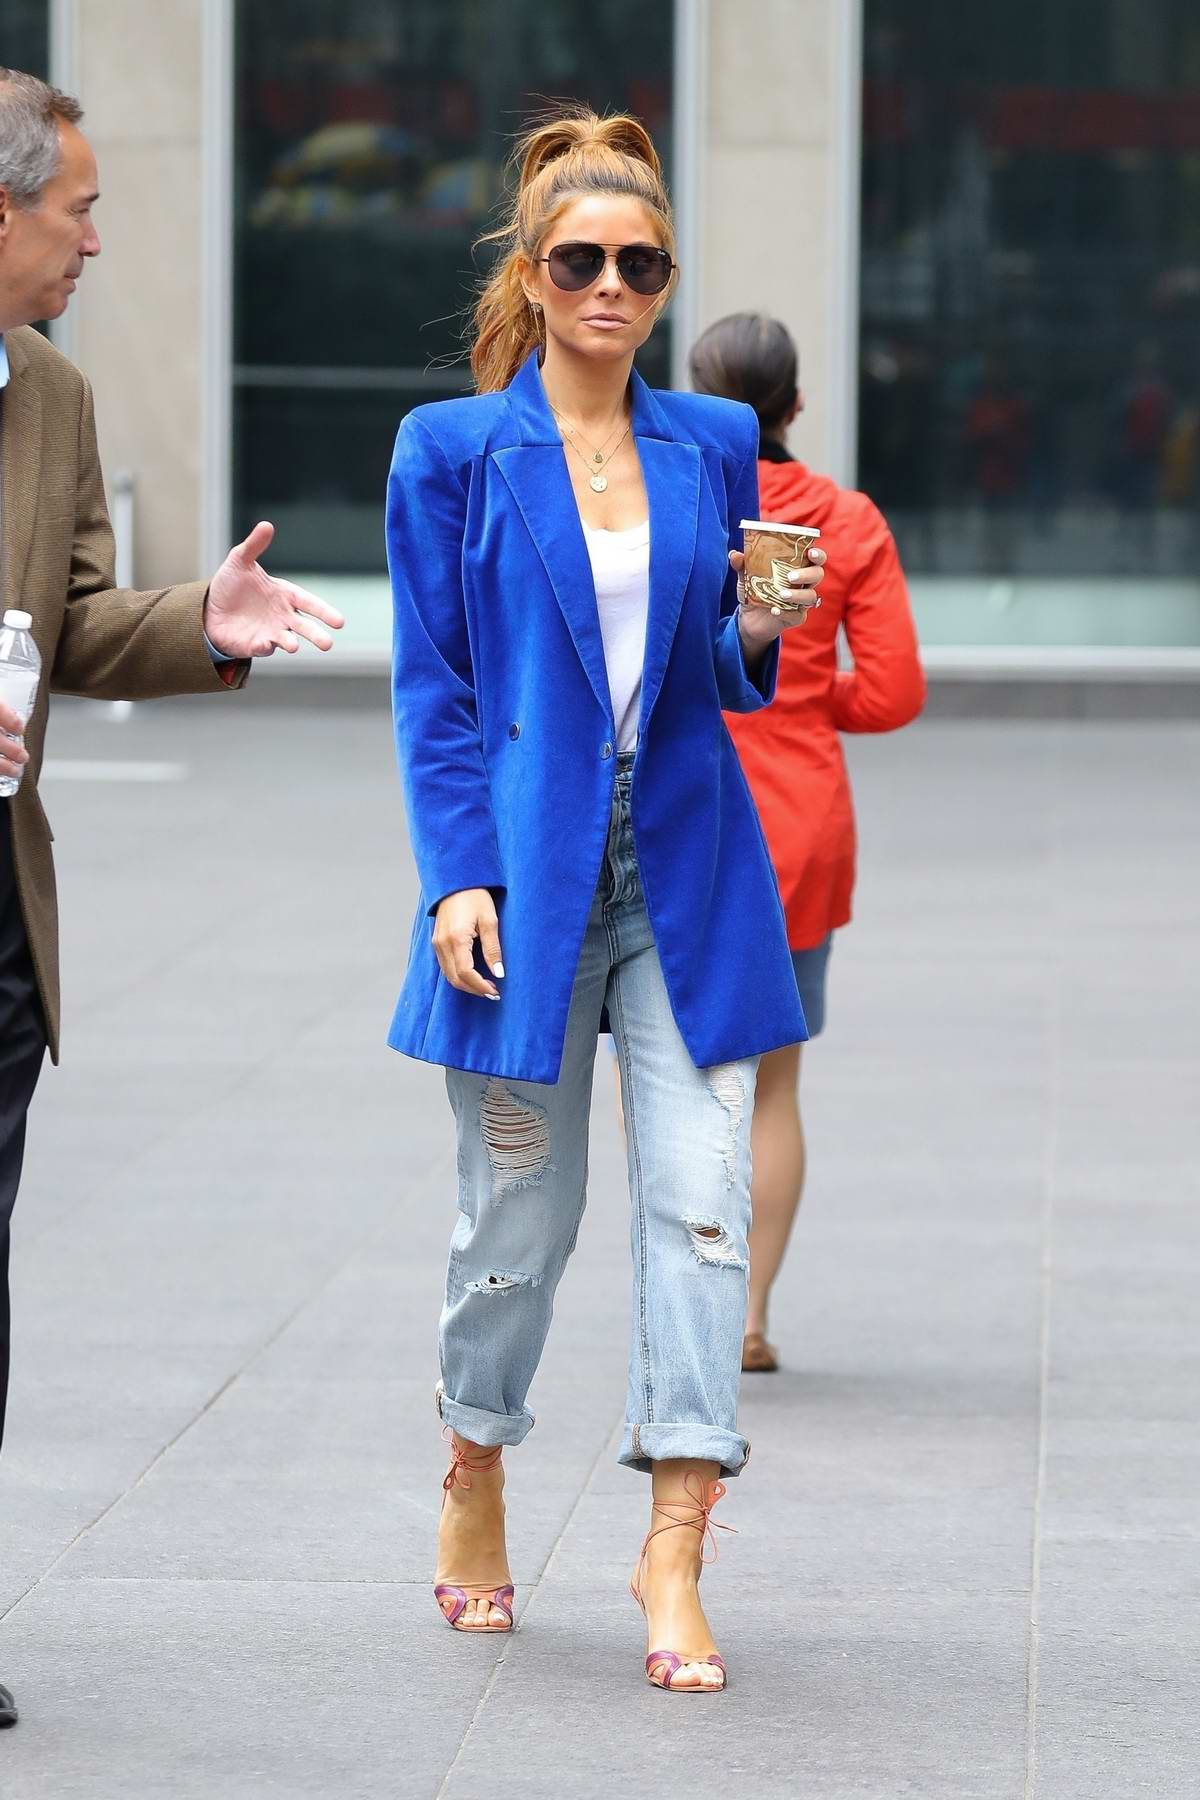 Maria Menounos stands out in a bright blue blazer while out for coffee in New York City